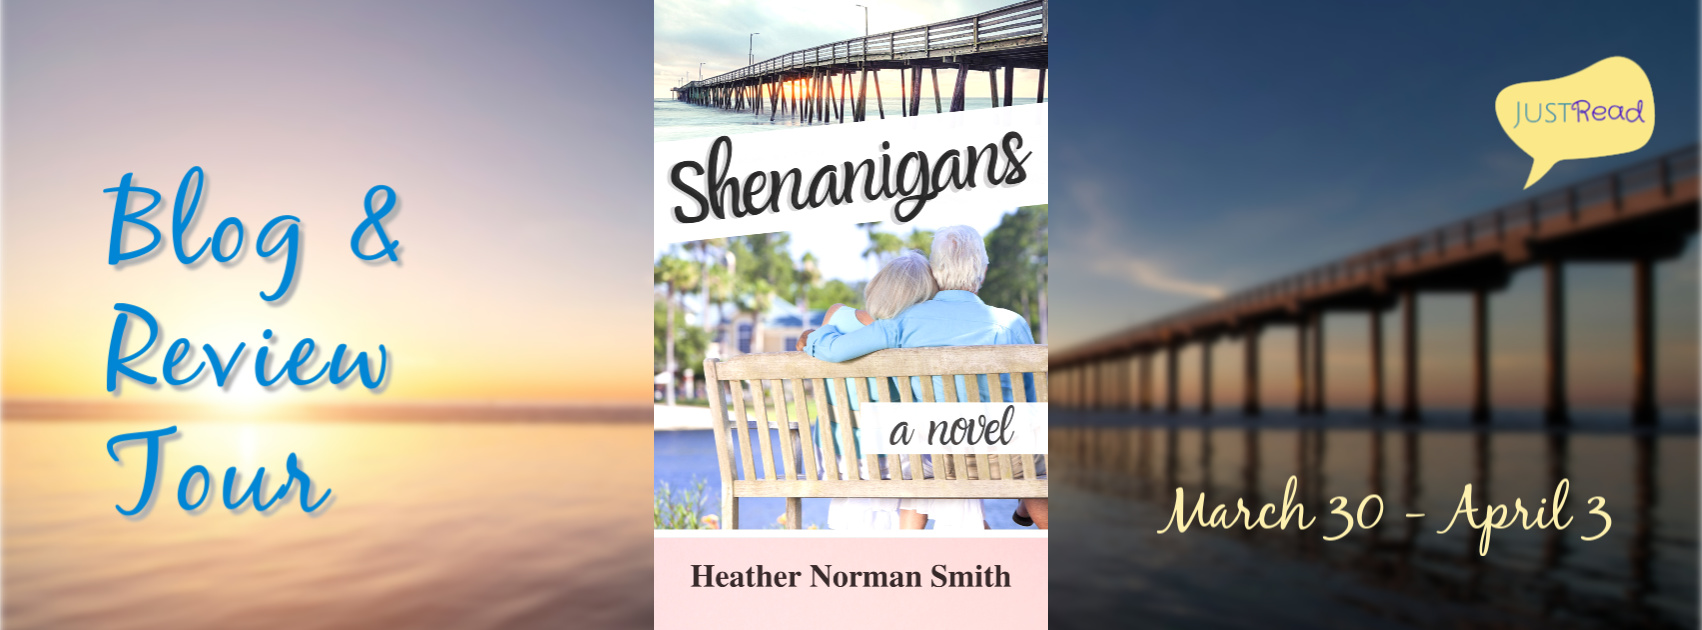 Welcome to the Shenanigans Blog Tour & Giveaway!